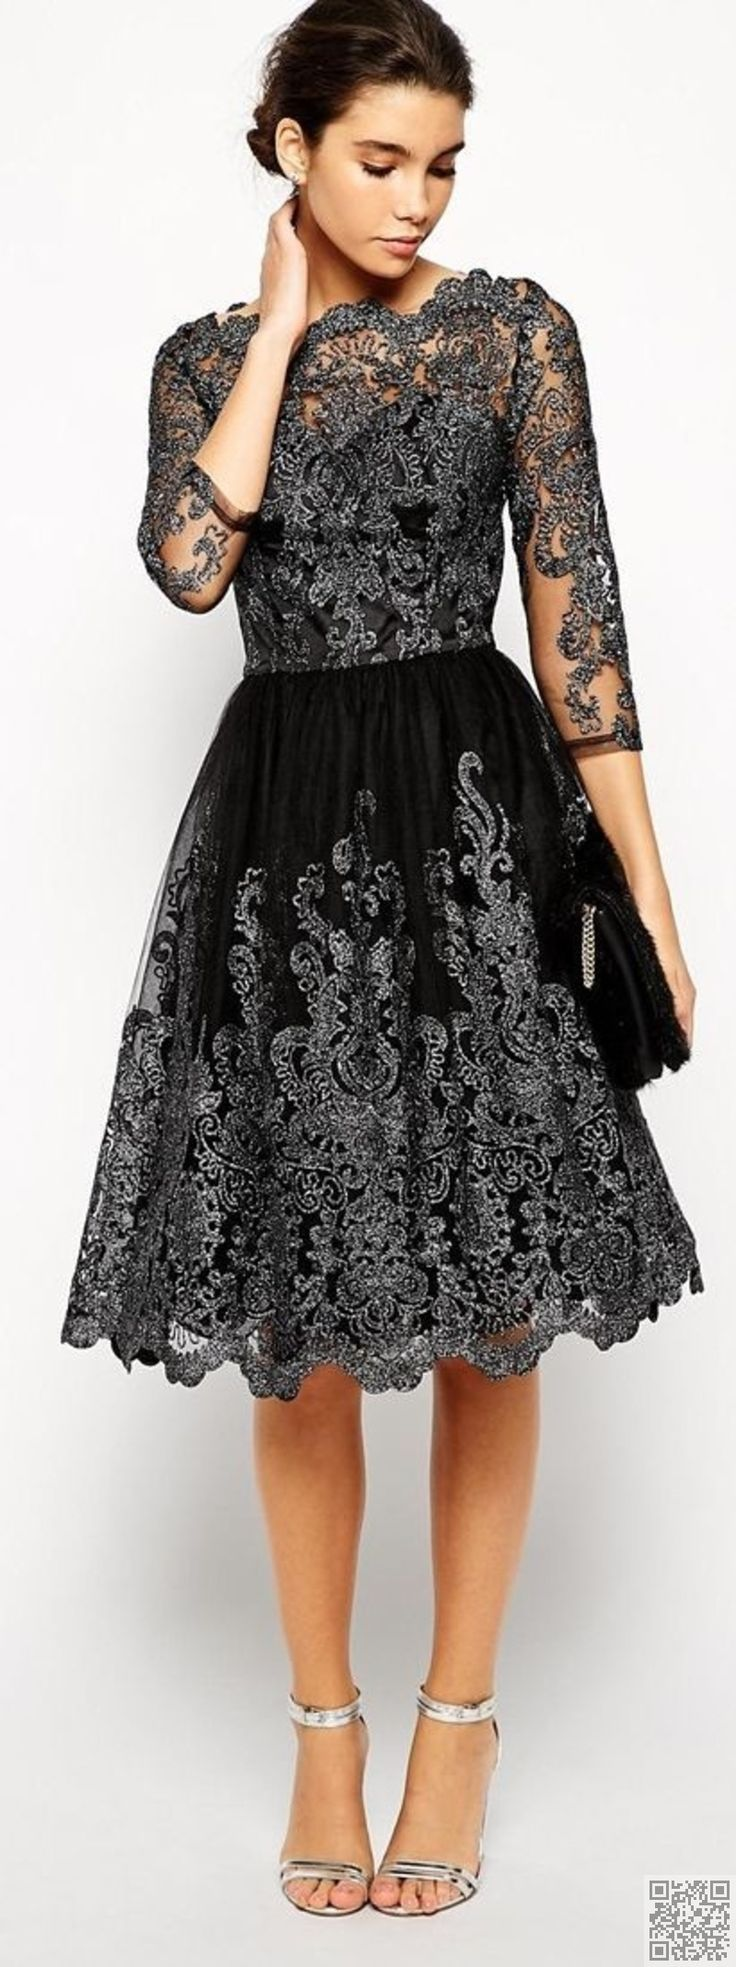 White and black lace dress pinterest